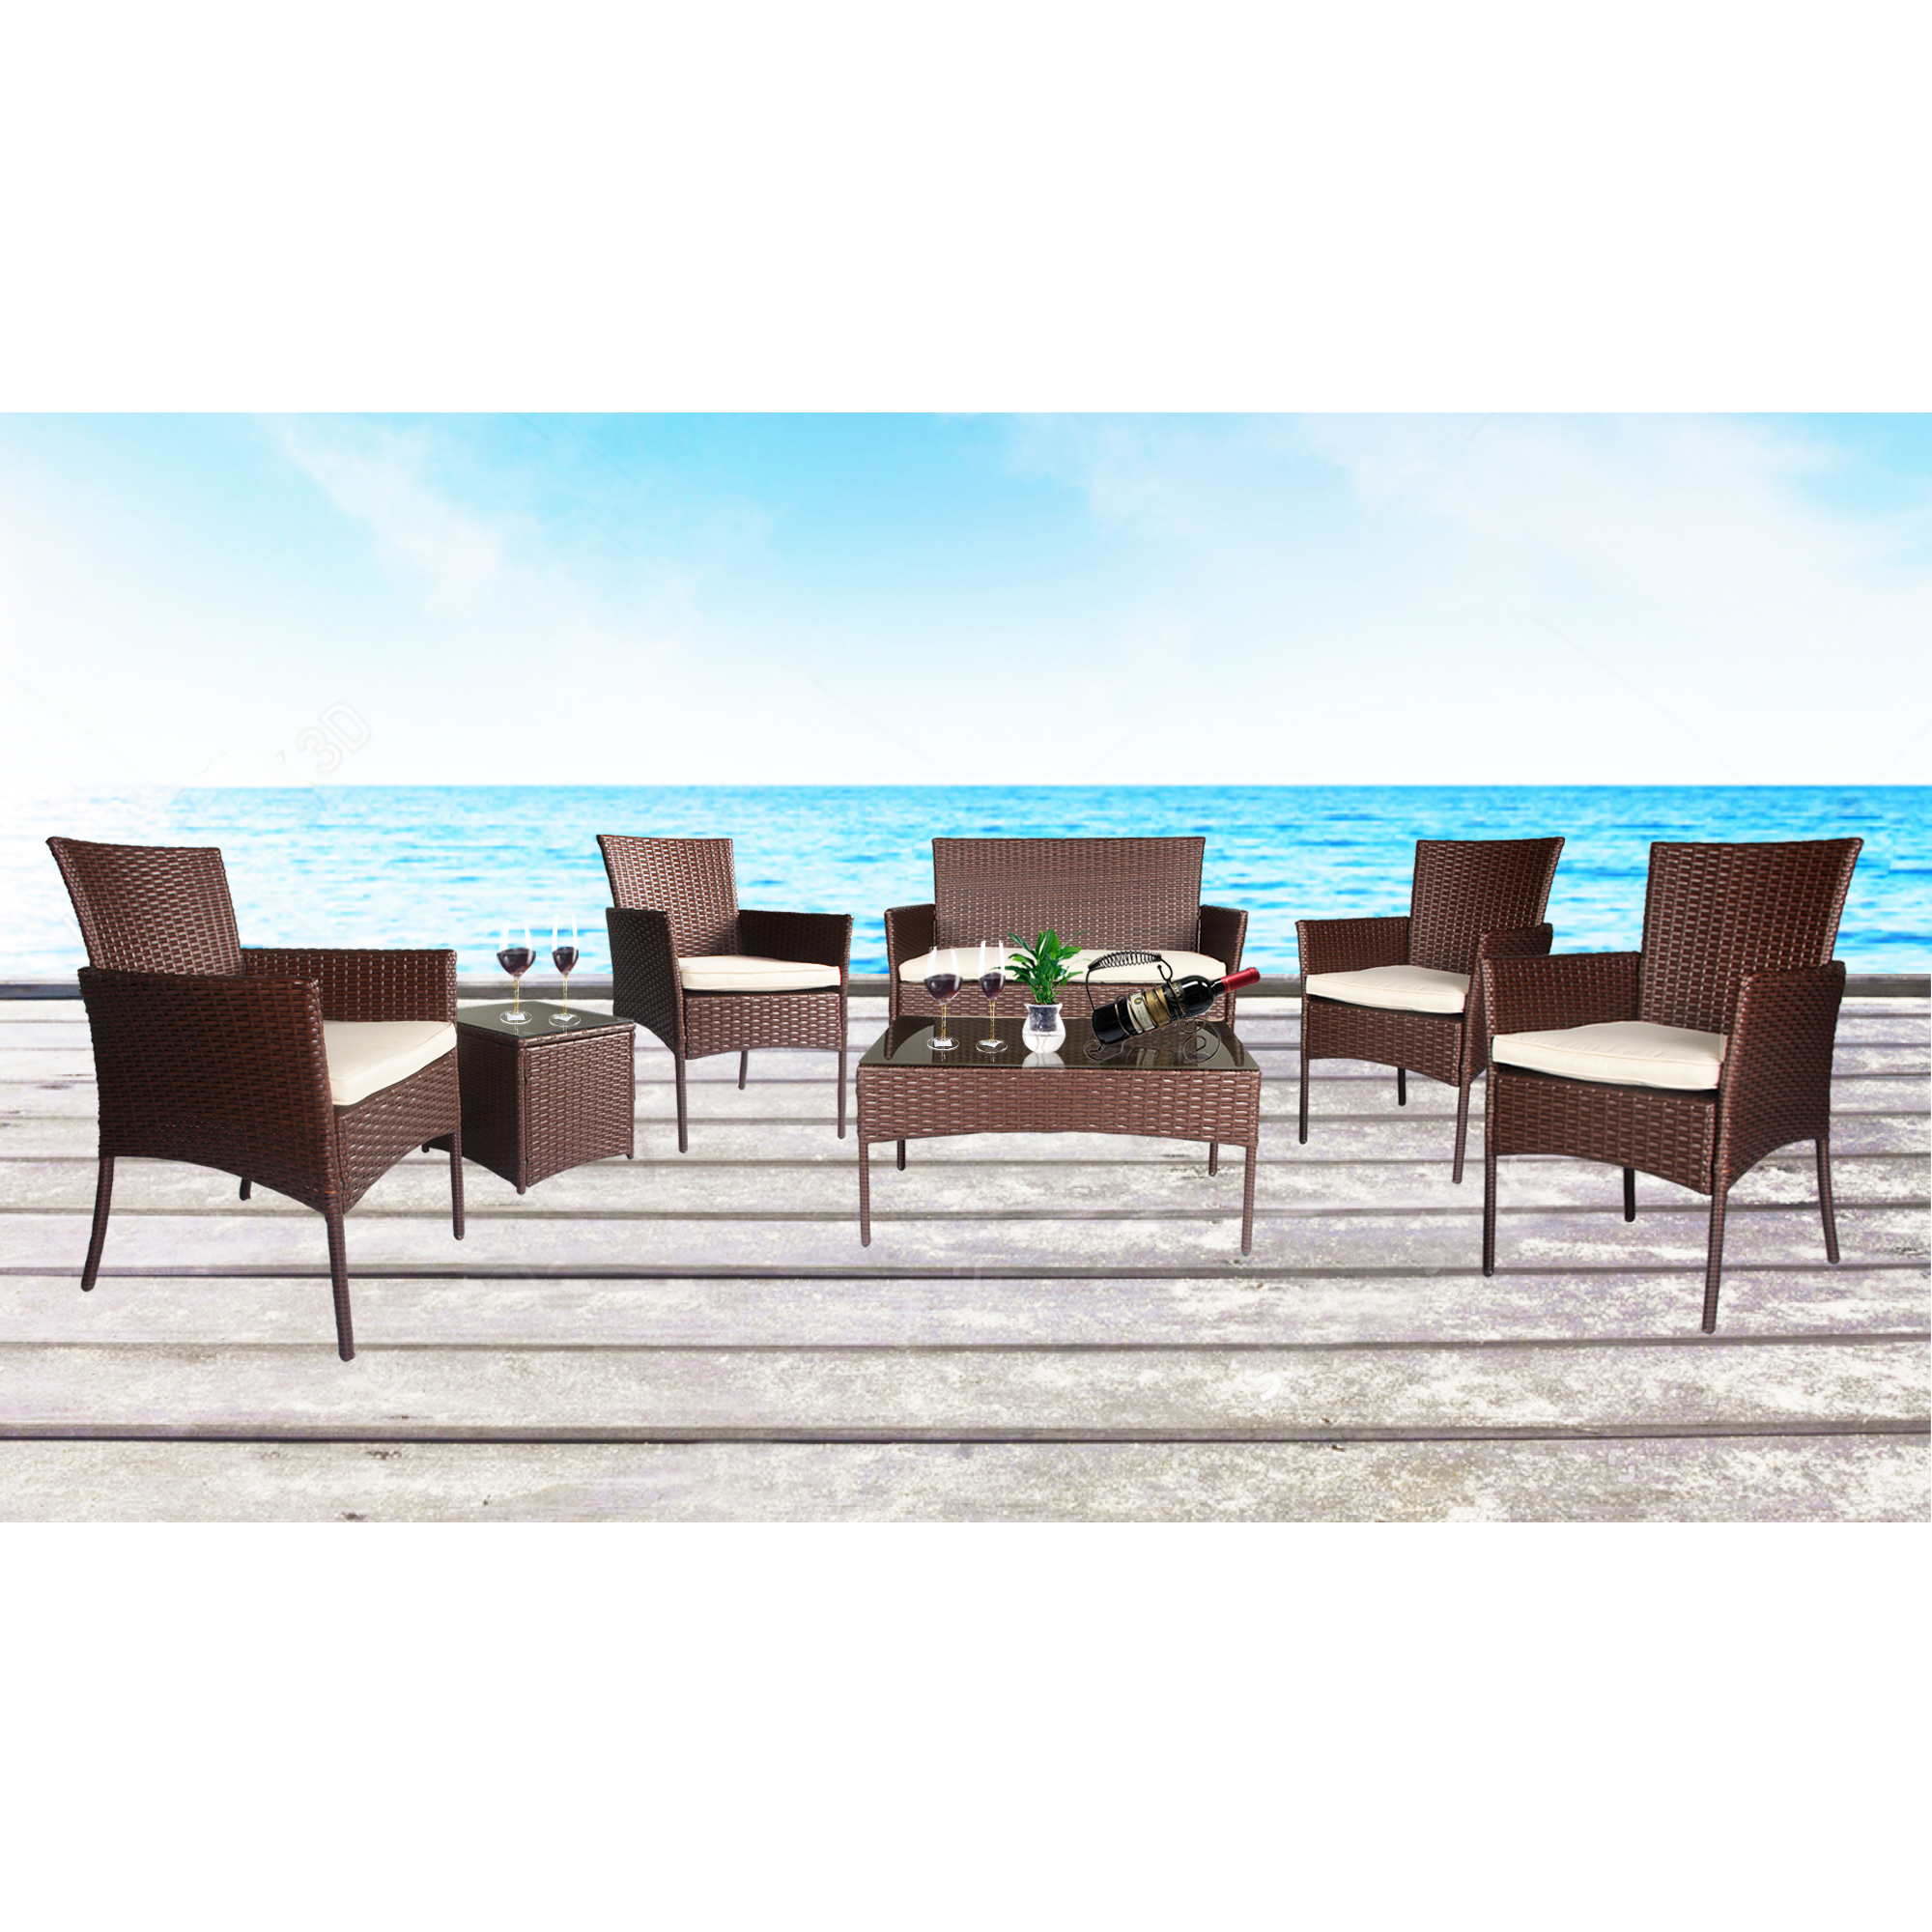 Cloud Mountain Outdoor 7 PC Conversation Set Wicker Bistro Conversation Set Wicker Sectional Furniture, Cocoa Brown Rattan with Creamy White Cushions